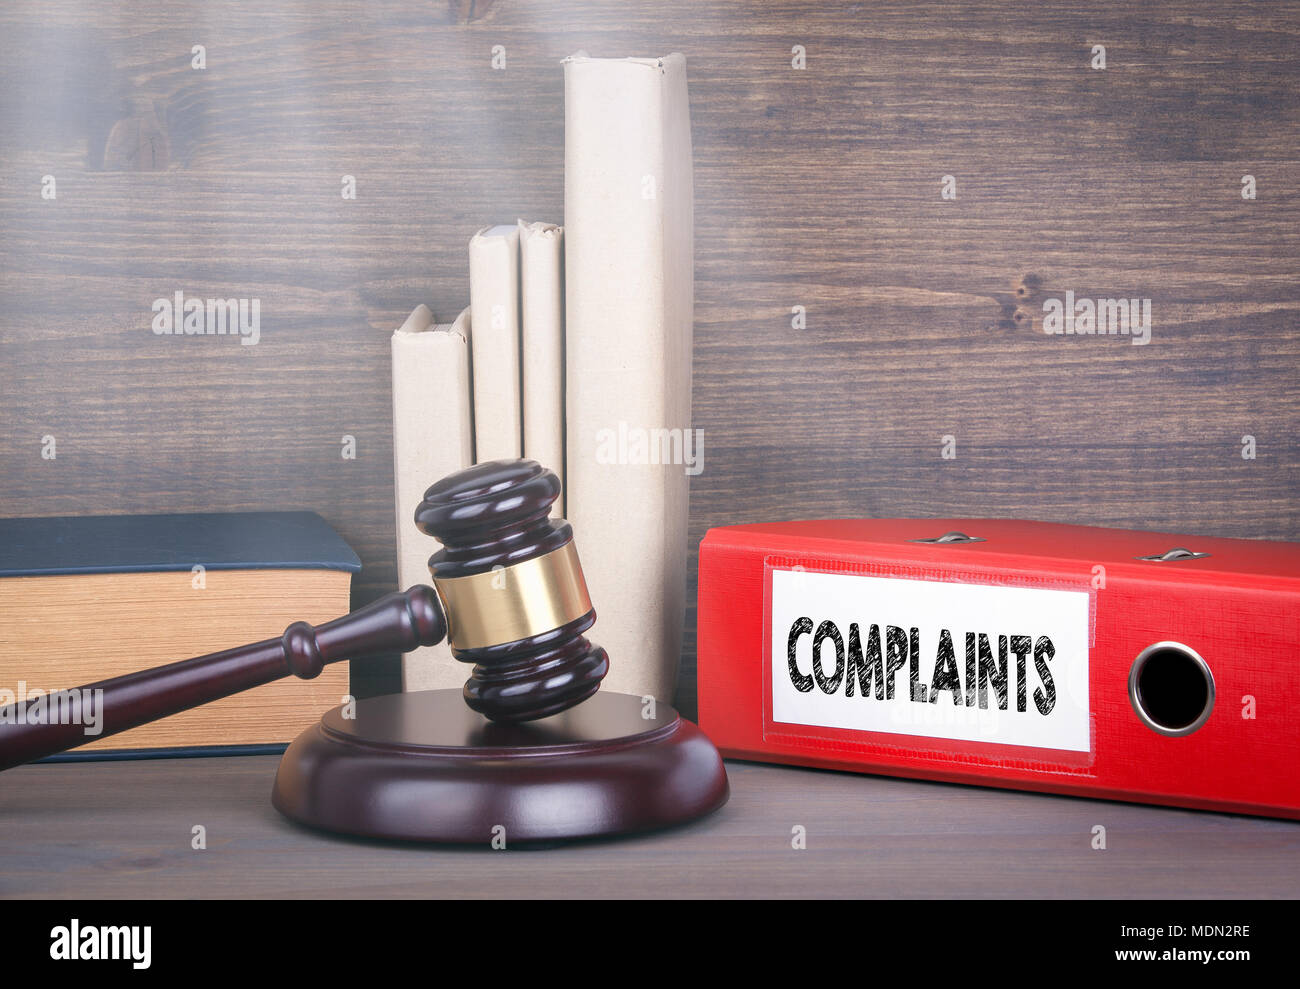 Complaints. Wooden gavel and books in background. Law and justice concept - Stock Image